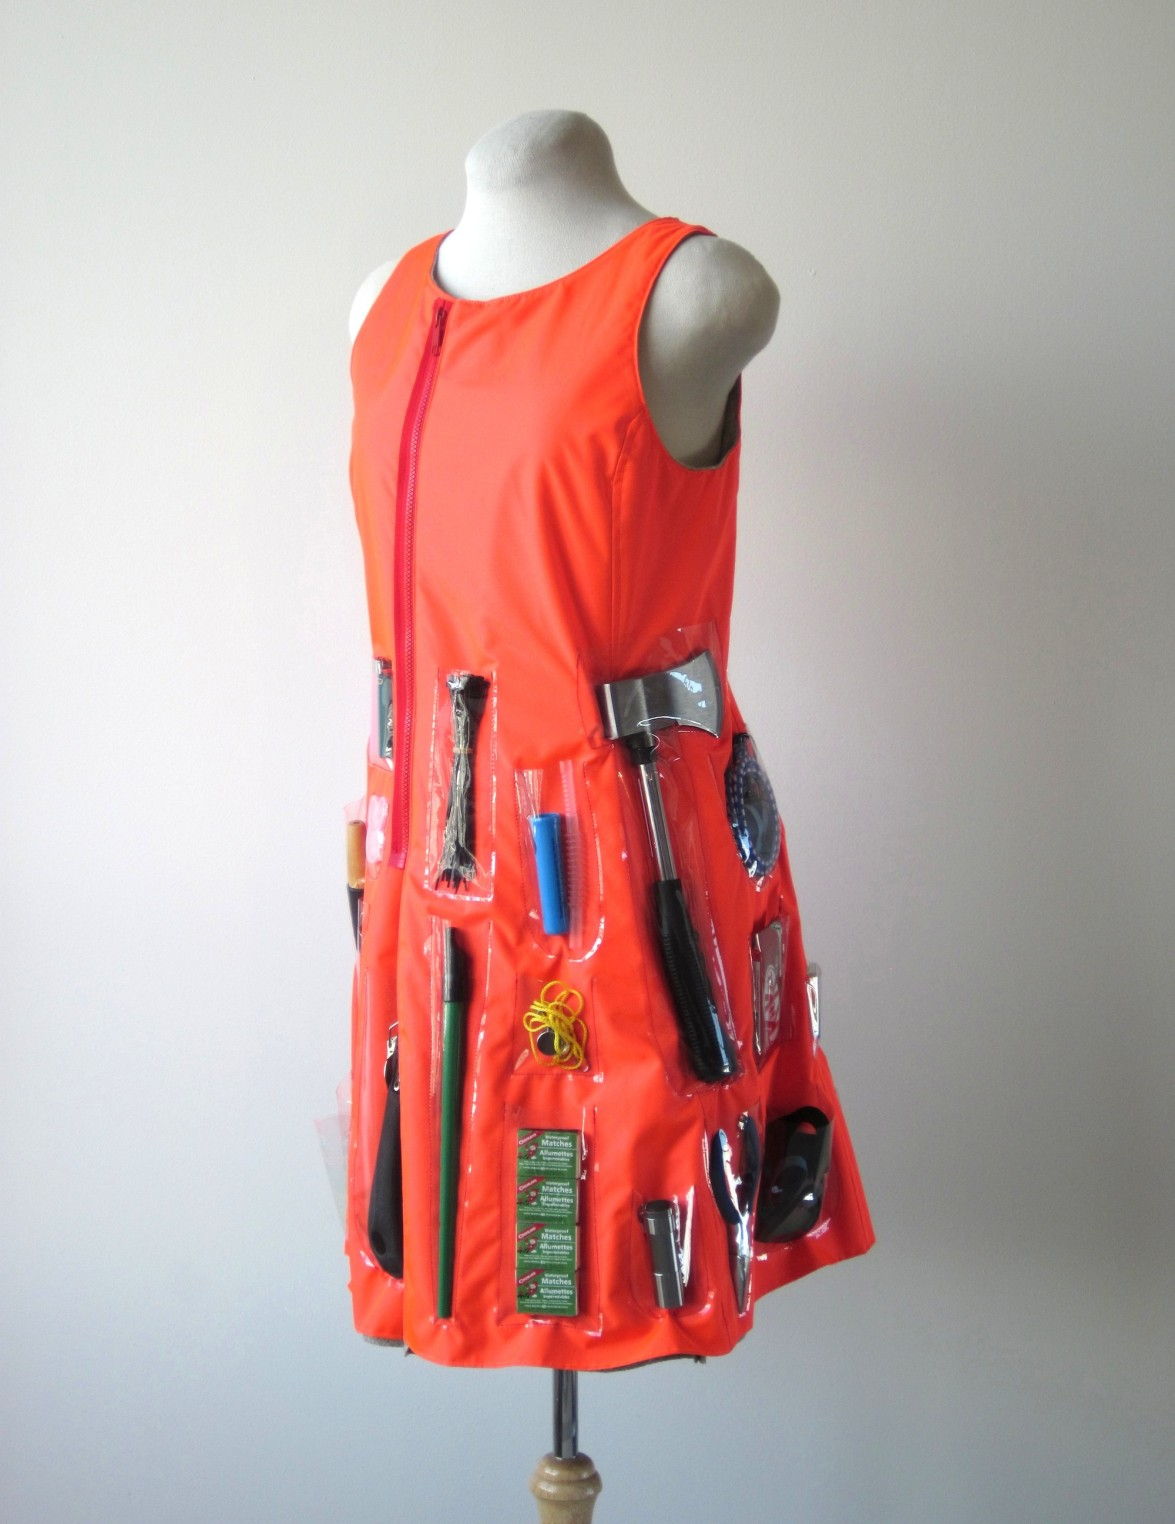 Kitkat Dress, 2013  (exterior view)